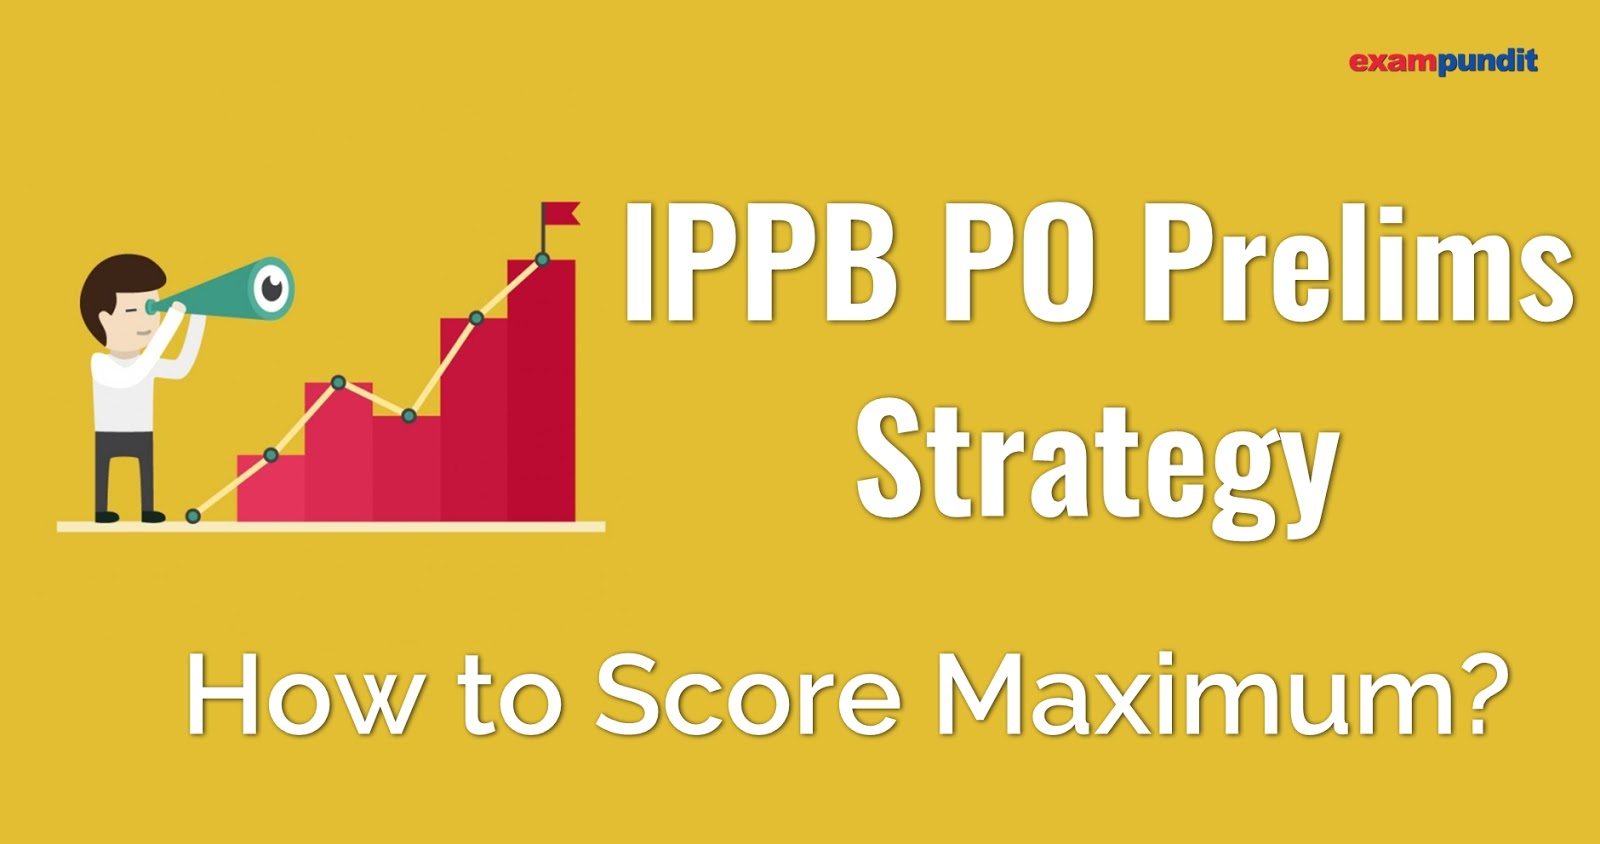 strategy for ippb assistant manager territory prelims exam  strategy for ippb assistant manager territory prelims exam 2017 how to score maximum